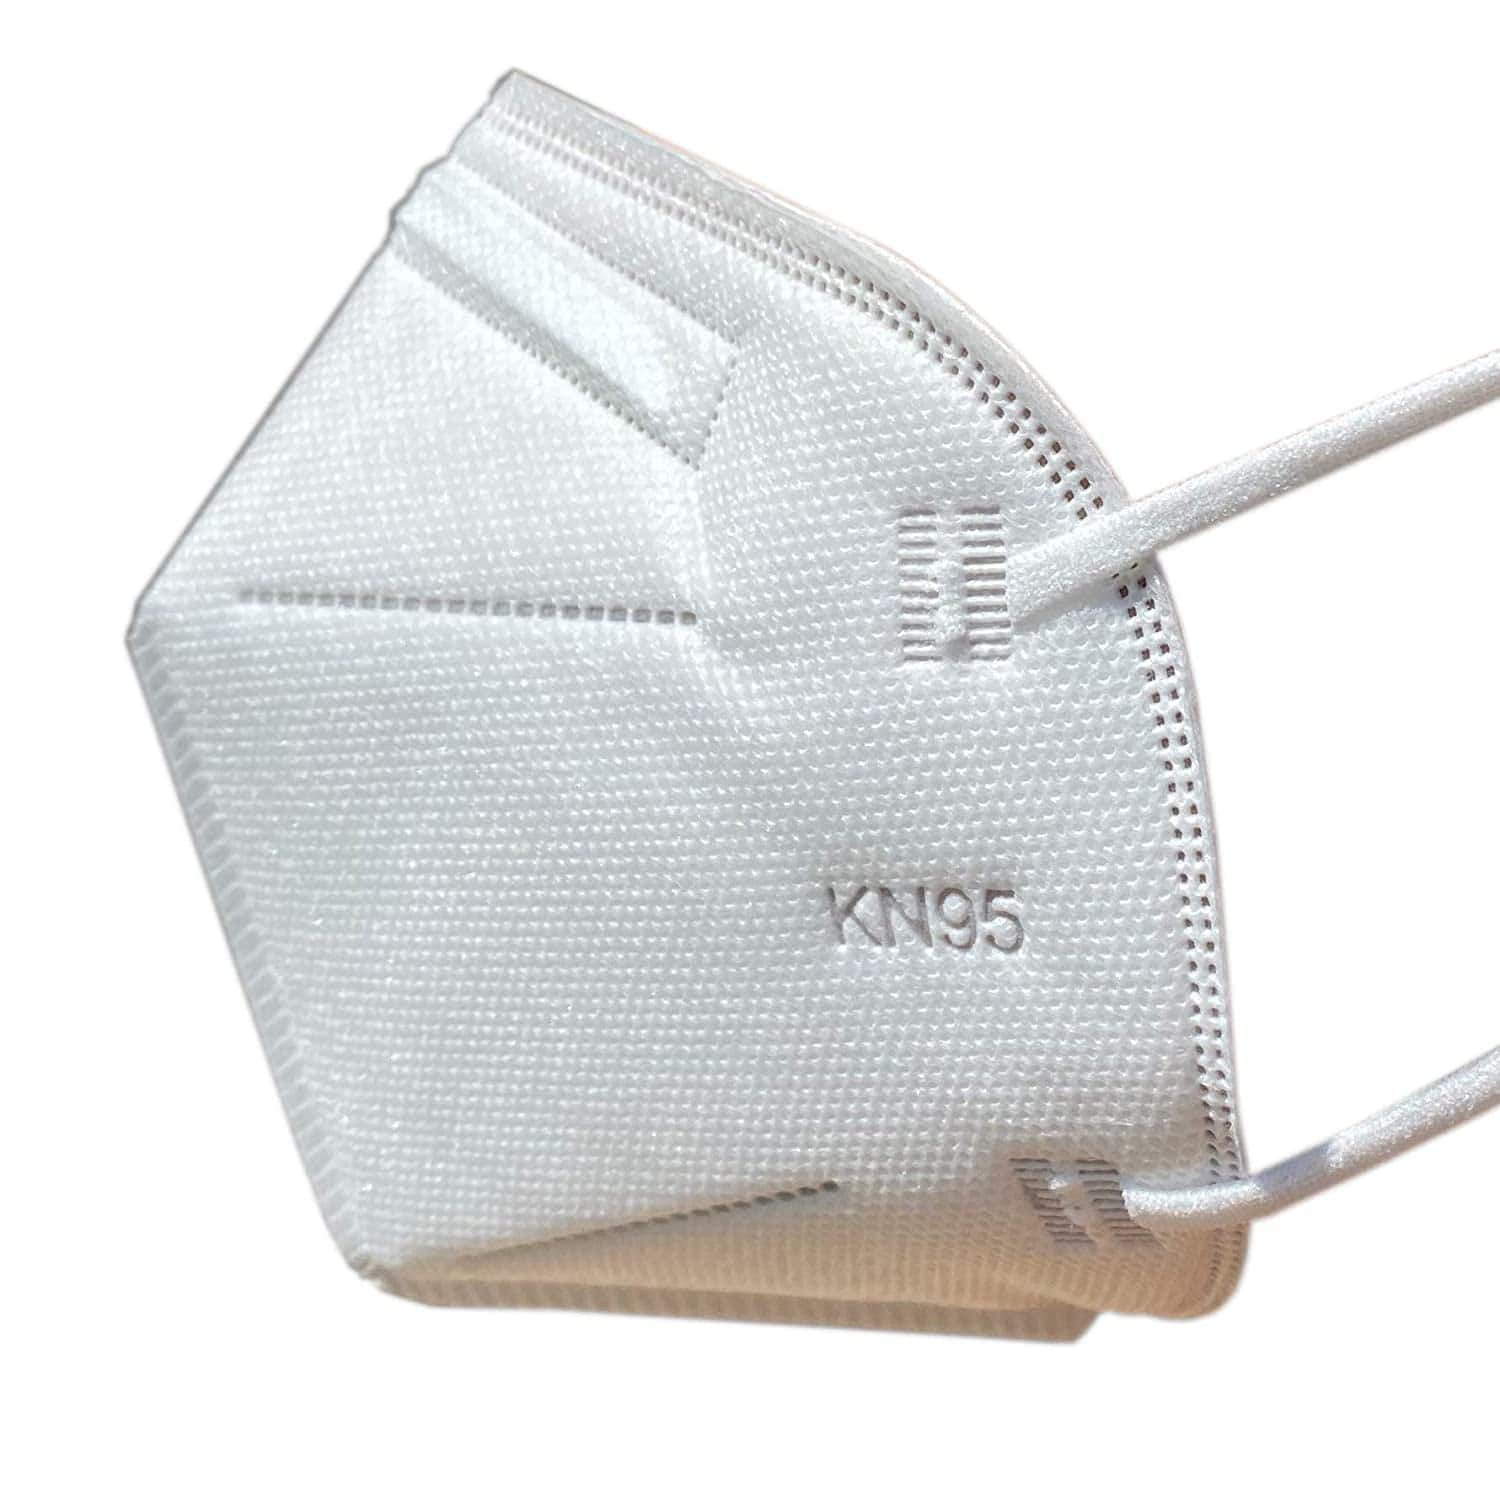 Free KN95 Mask (1 pcs) - CC required